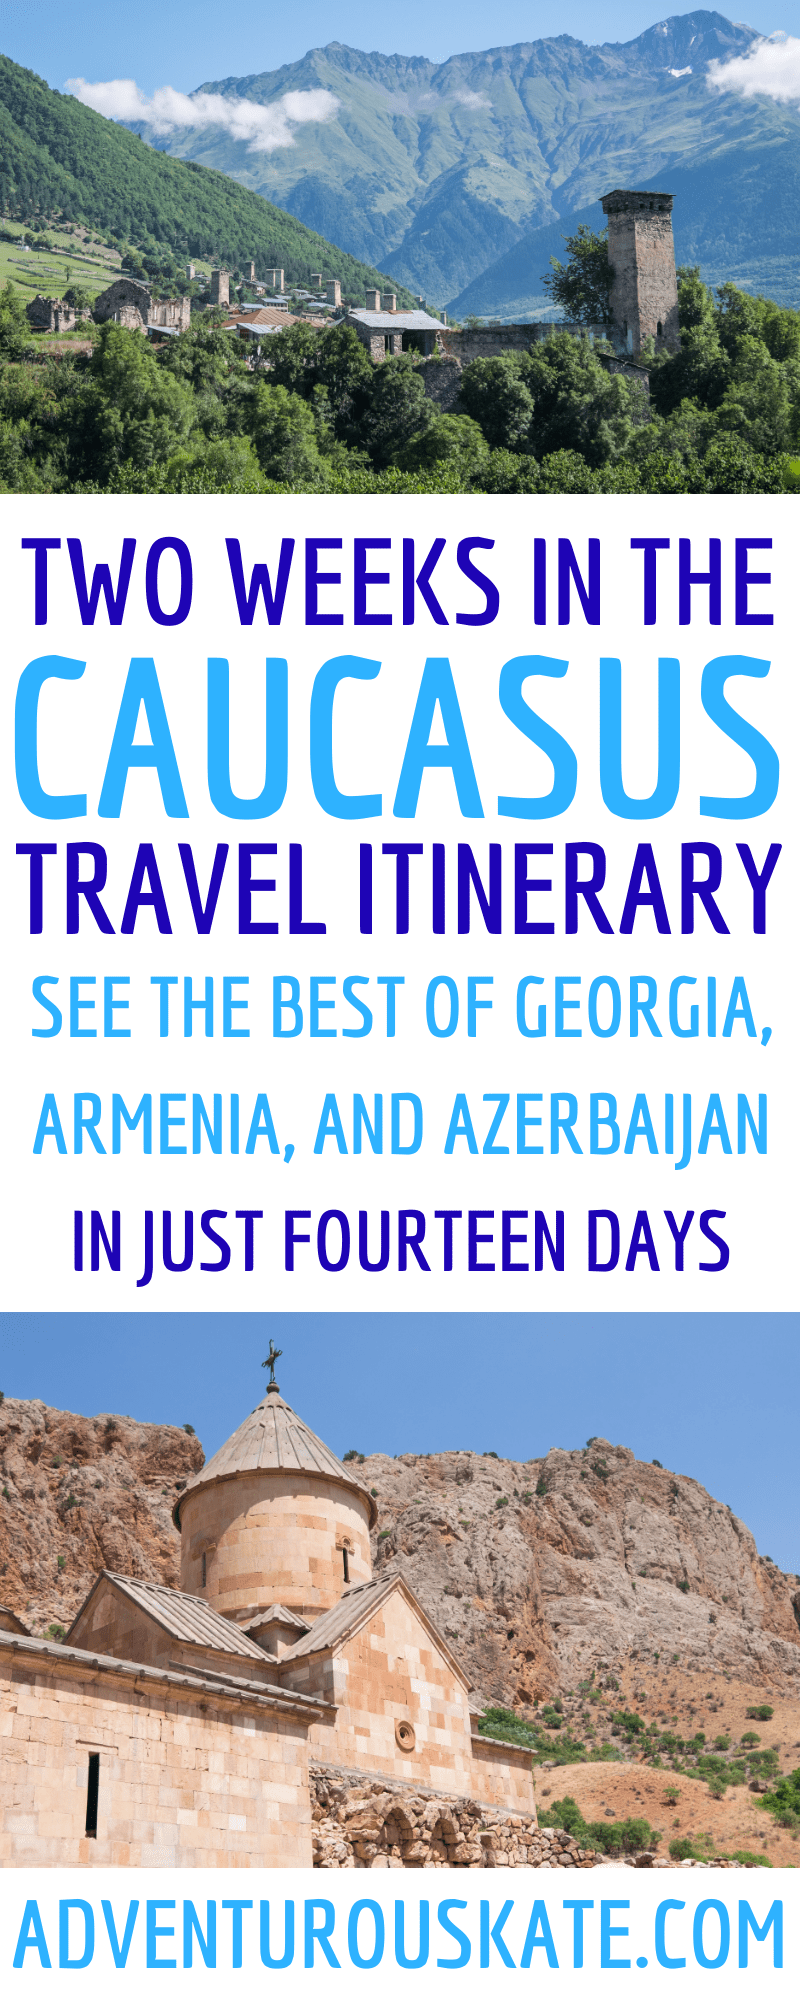 Two Weeks In The Caucasus Travel Itinerary For Georgia Armenia